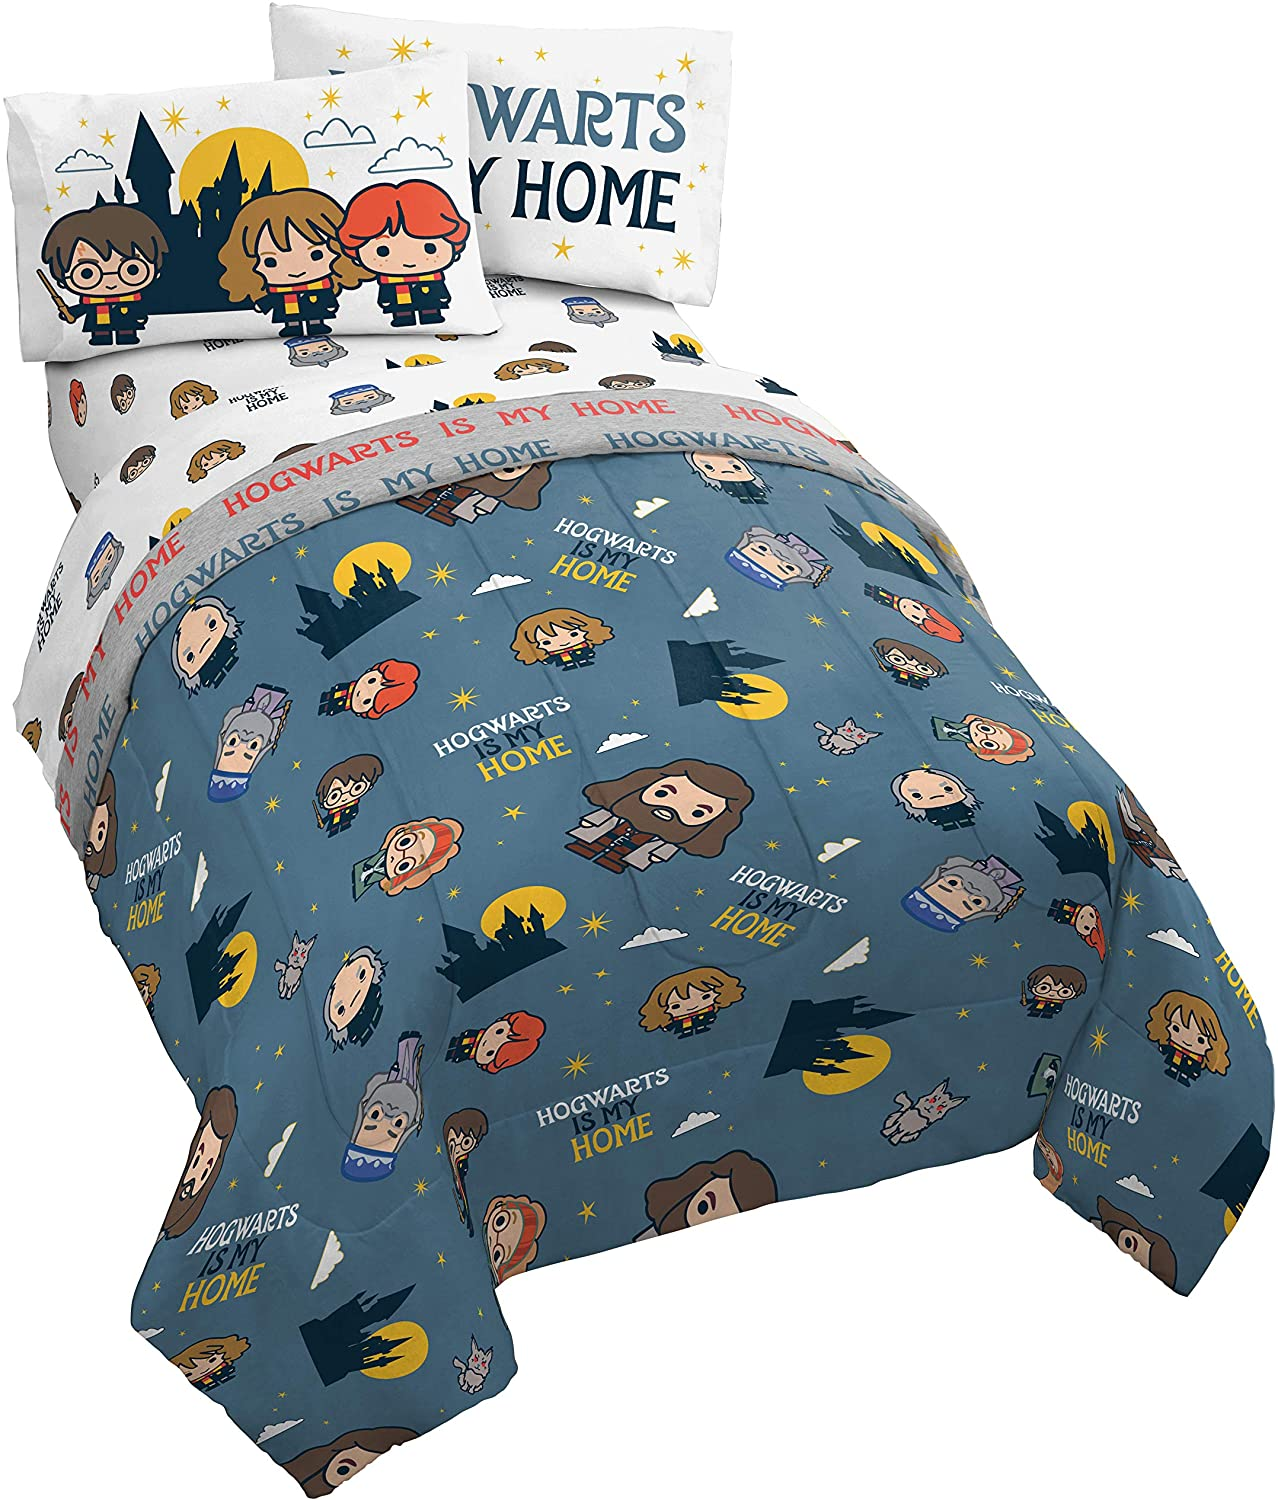 Super Soft Fade Resistant Microfiber Includes Comforter /& Sheet Set Bedding Features Spaceships /& Rocketships Jay Franco Space 5 Piece Full Bed Set